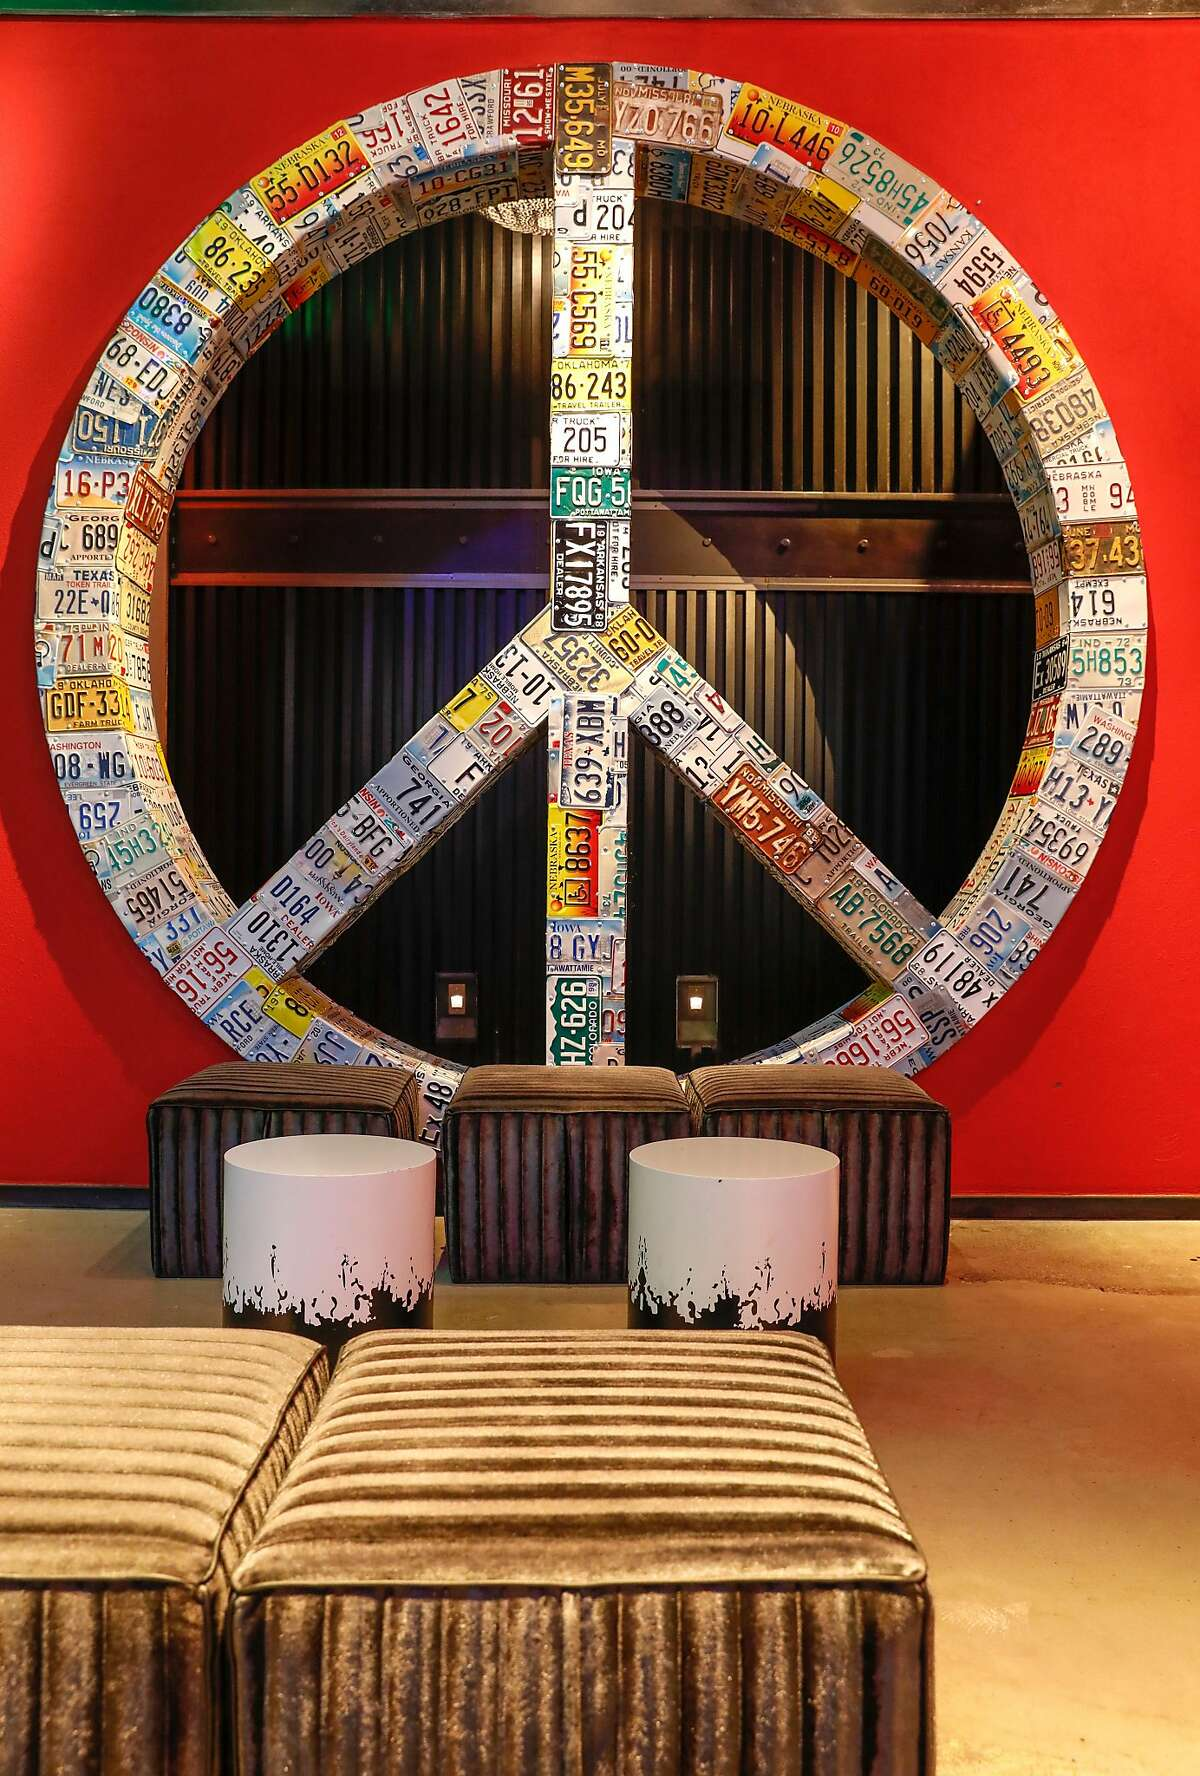 The Peace Room in The Hotel Zeppelin San Francisco is seen on Monday, June 19, 2017 in San Francisco, Calif.